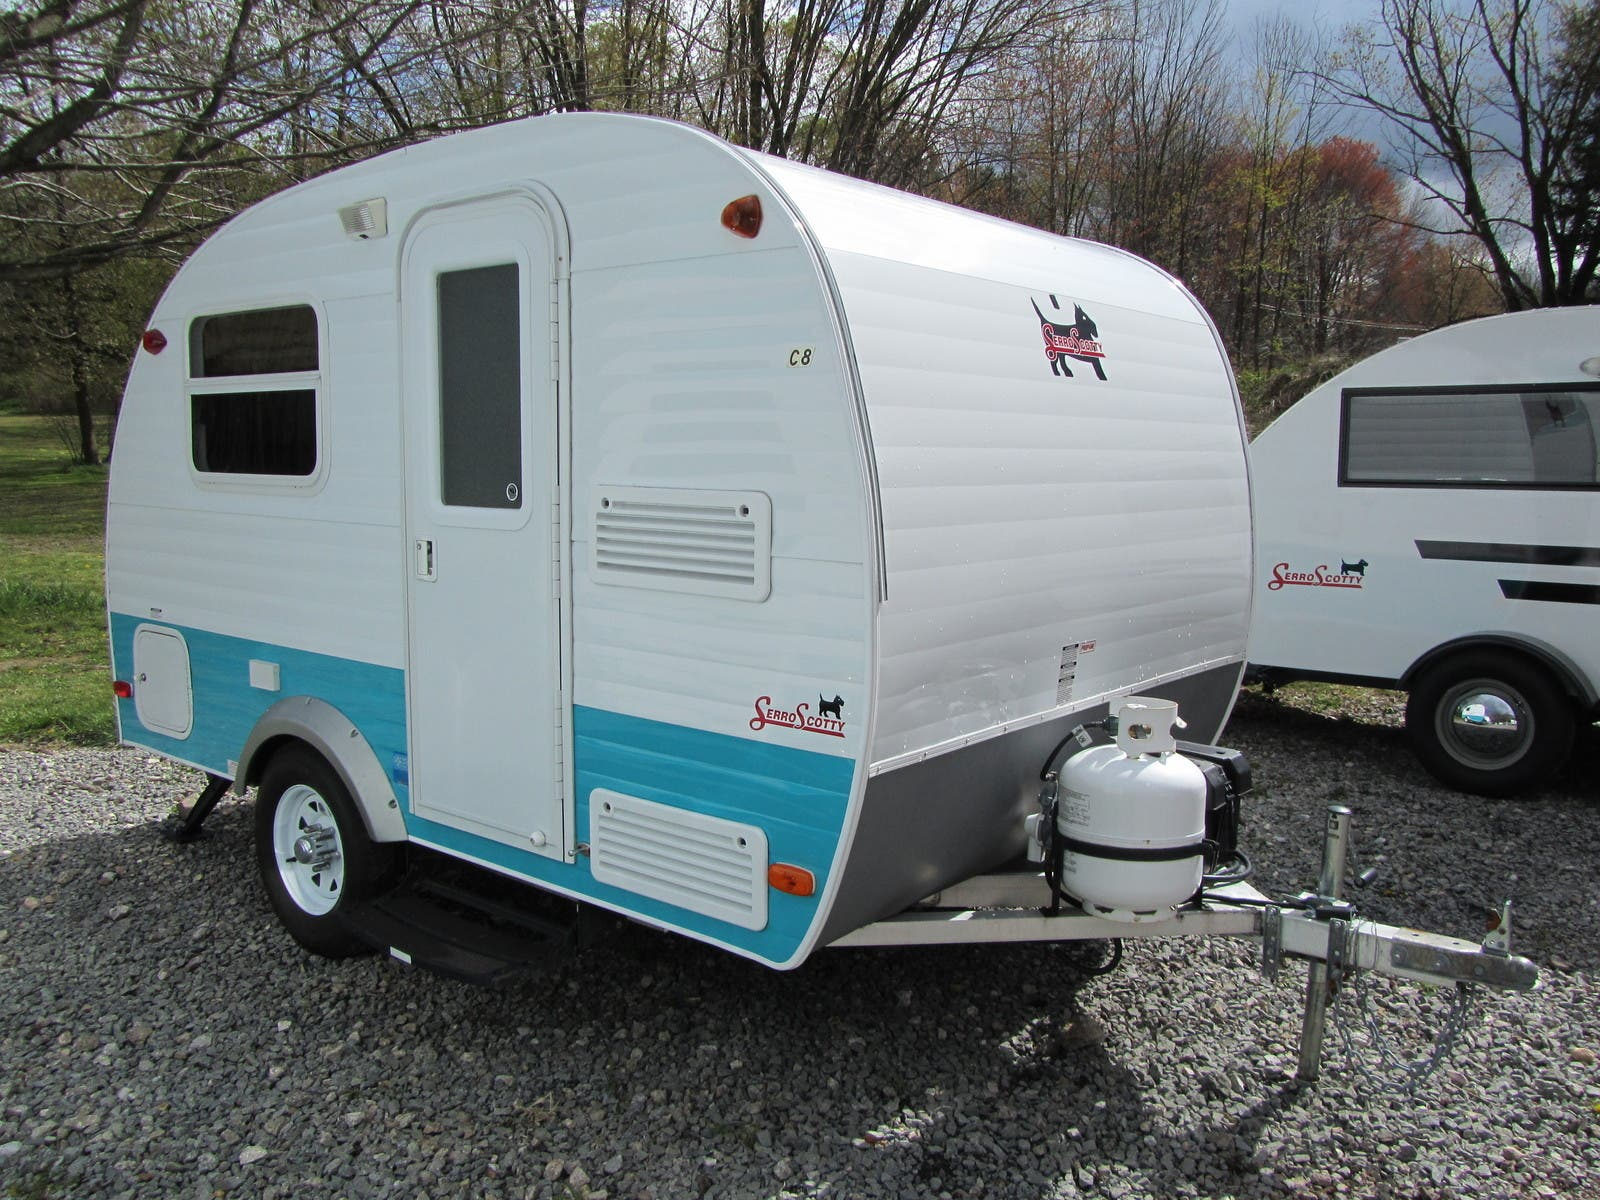 Tiny Camping Trailers small travel trailers from toronto rv show offering comfort and style The Small Trailer Enthusiast